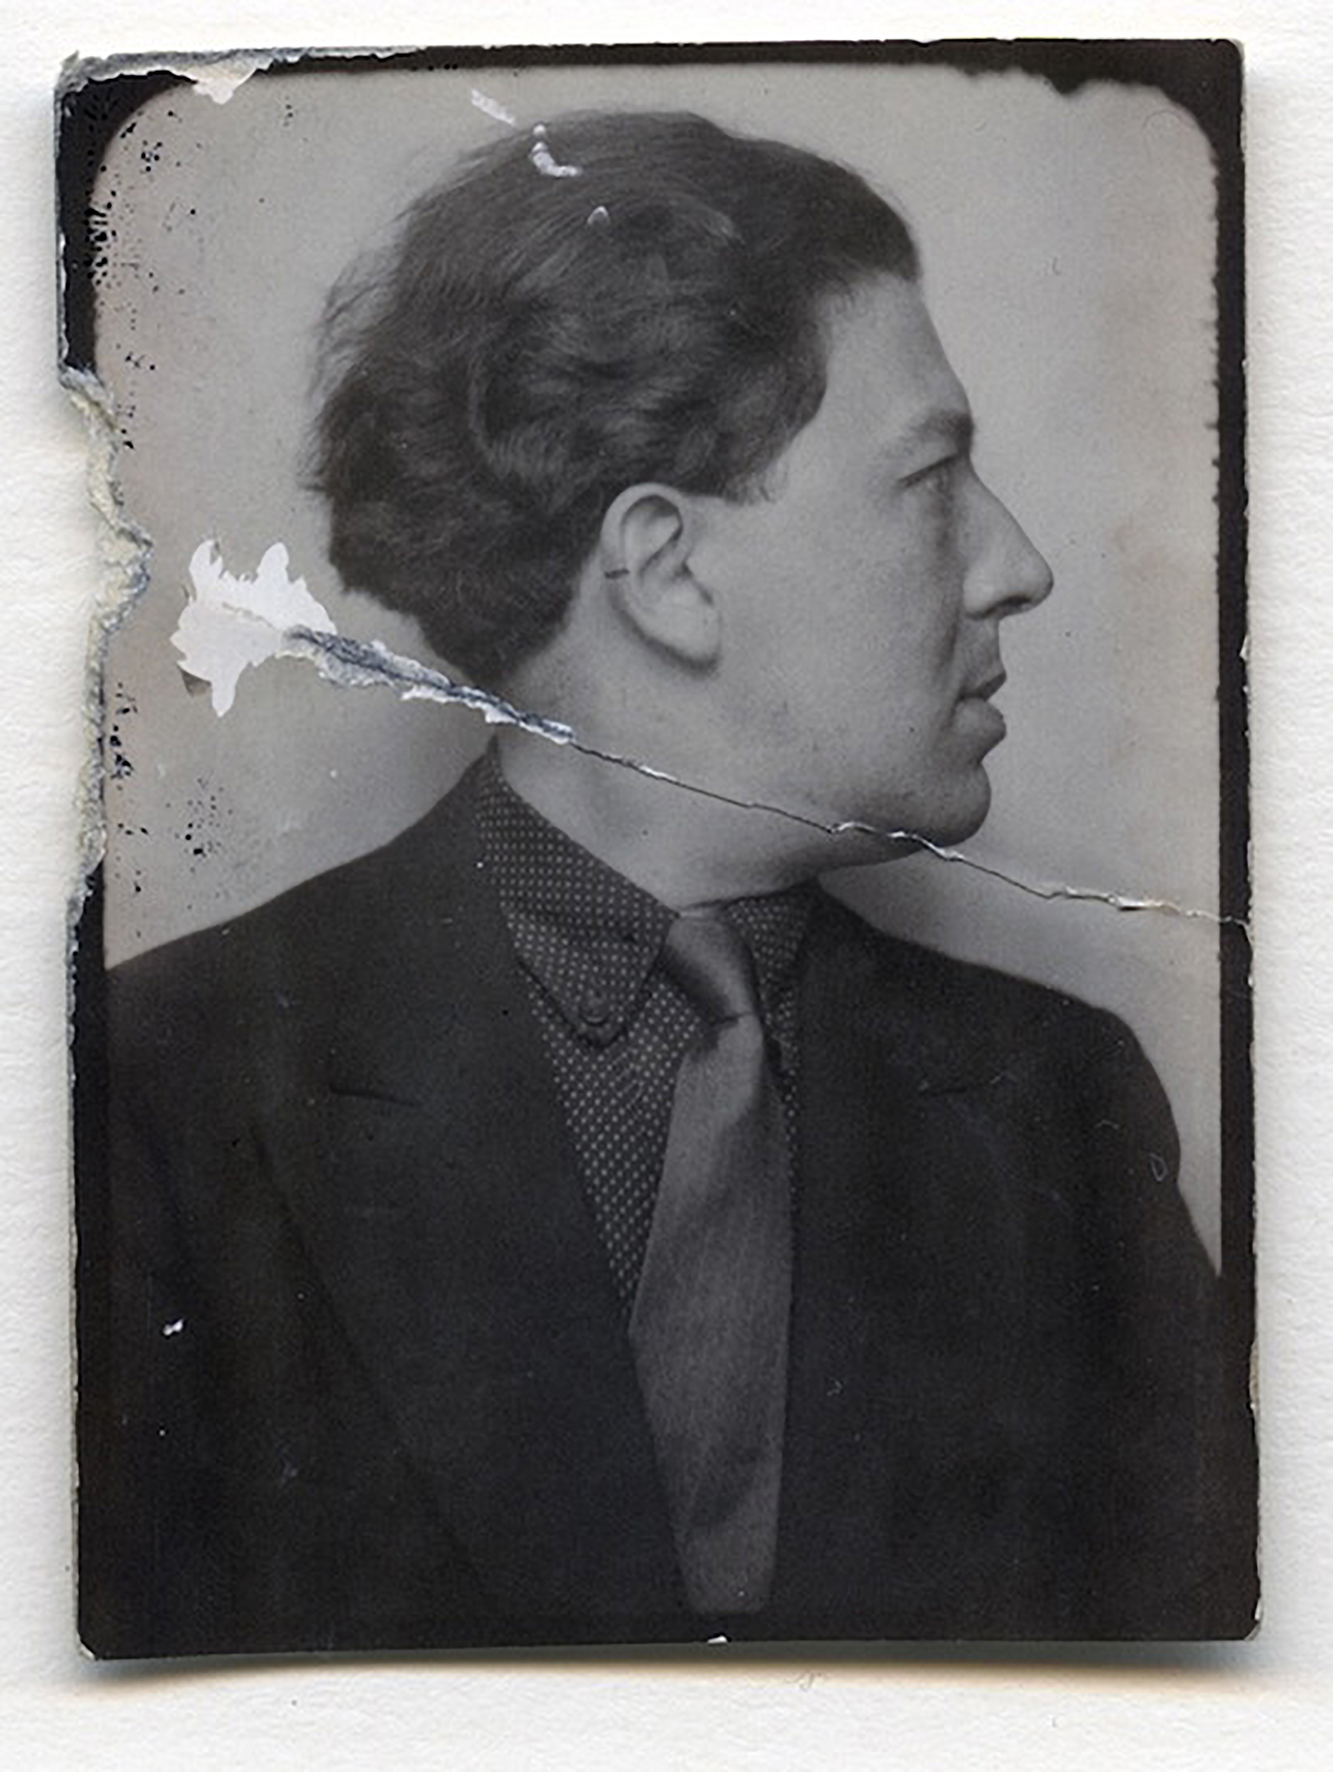 André Breton, Photomaton, André Breton, C 1929, Unique Photomaton, silver gelatin print, 5.1 x 3.8 cm ©ADAGP, Paris and DACS, London 2017